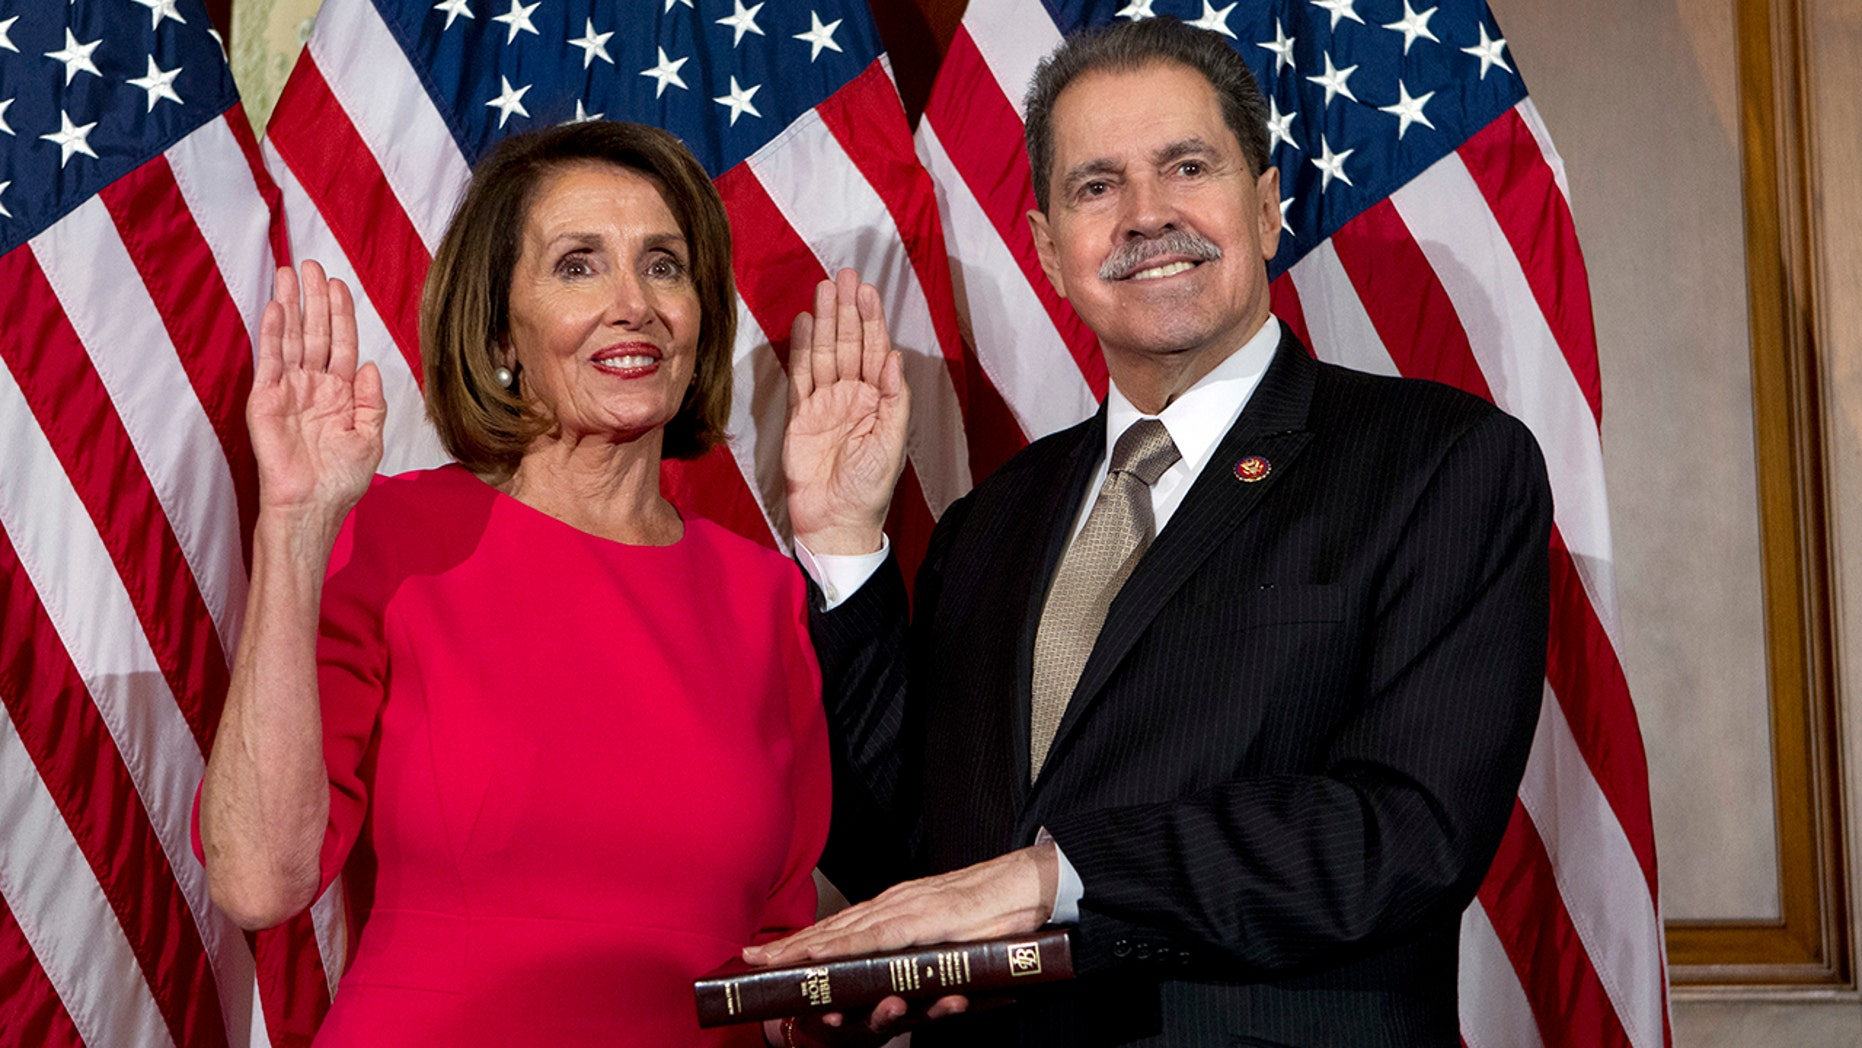 FILE - In this Jan. 3, 2019, file photo, House Speaker Nancy Pelosi of Calif., administers the House oath of office to Rep. Jose Serrano, D-N.Y., during a ceremonial swearing-in on Capitol Hill in Washington, during the opening session of the 116th Congress. Serrano, a 16-term Democrat from the South Bronx, says he has Parkinson's Disease and will retire at the end of his term. (AP Photo/Jose Luis Magana, File)